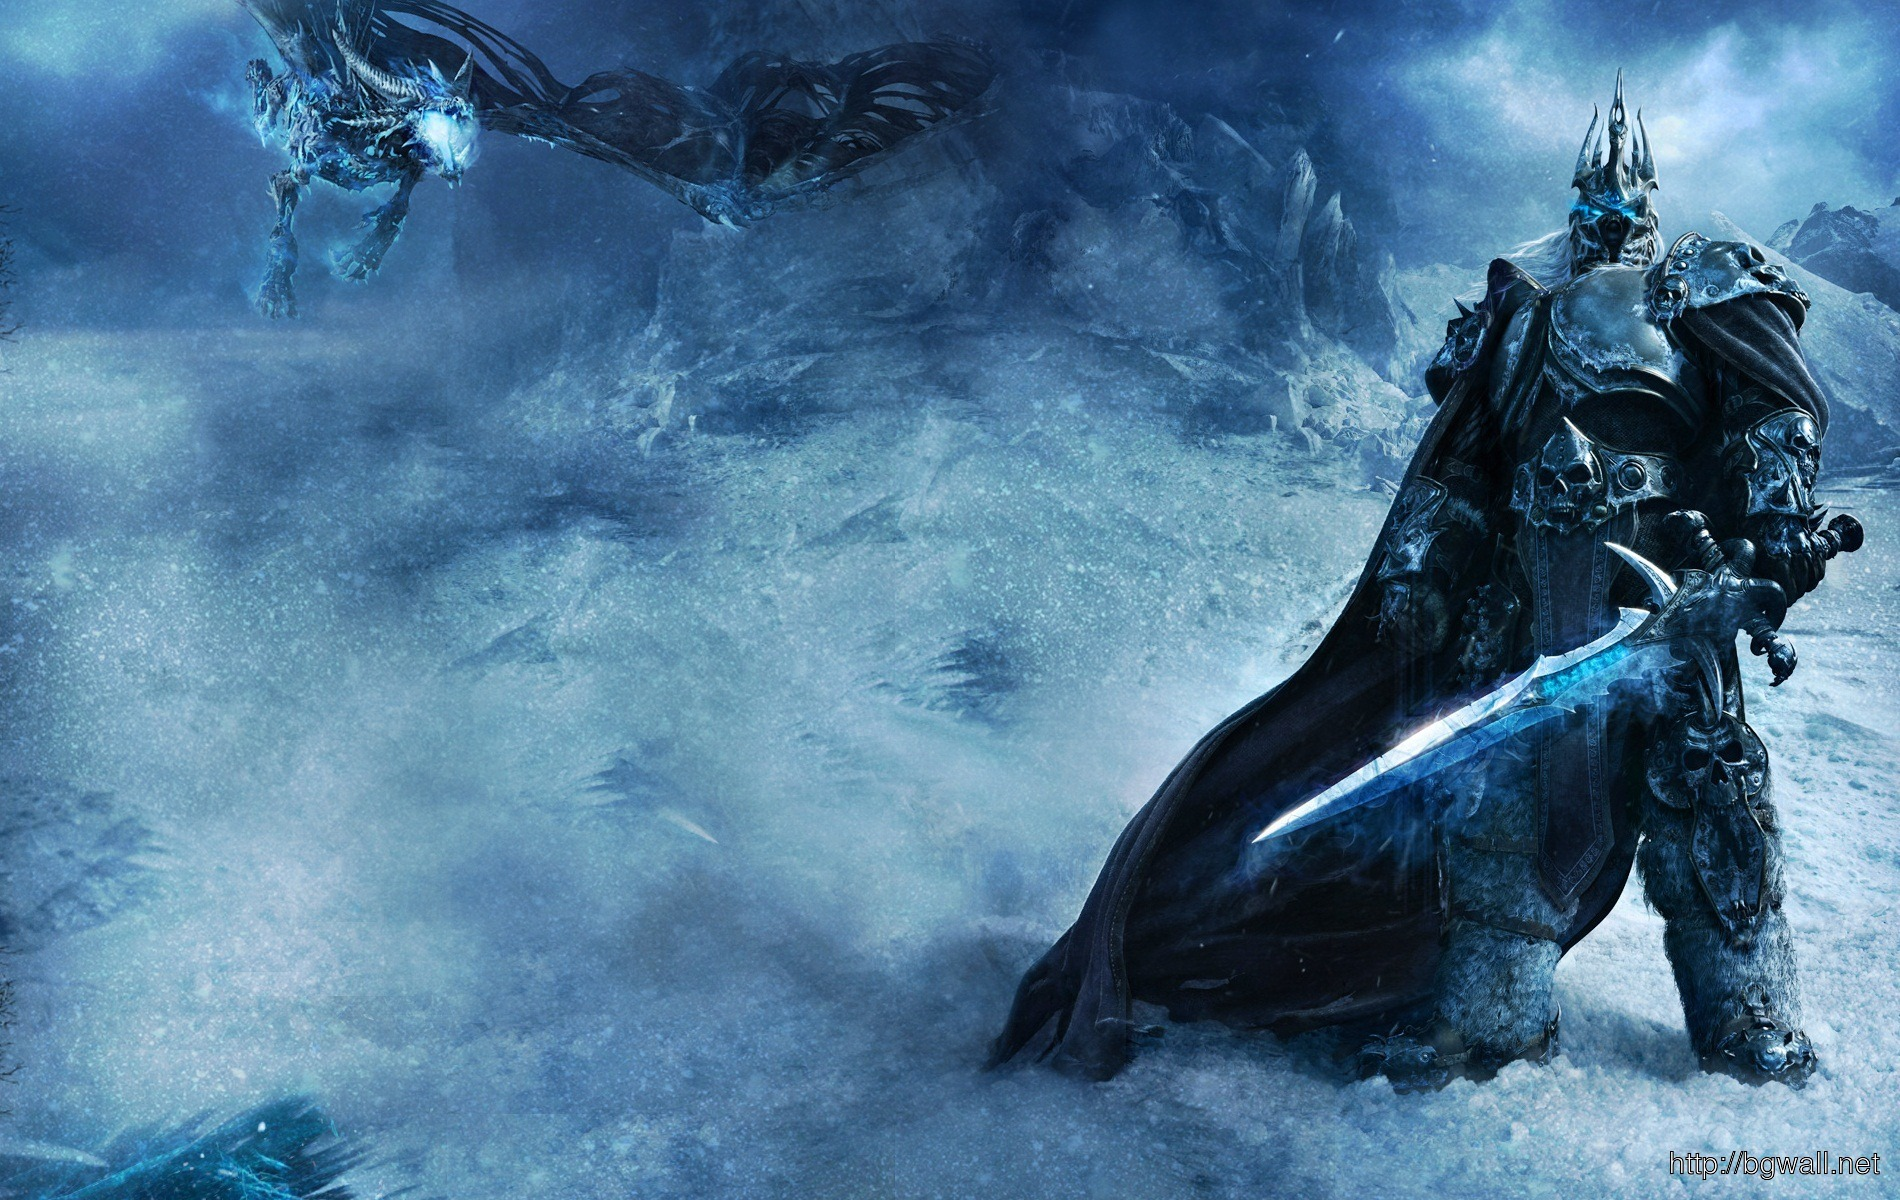 World Of Warcraft Snow Storm Lich King Game Wallpaper 1900x1200 Pixel Full Size